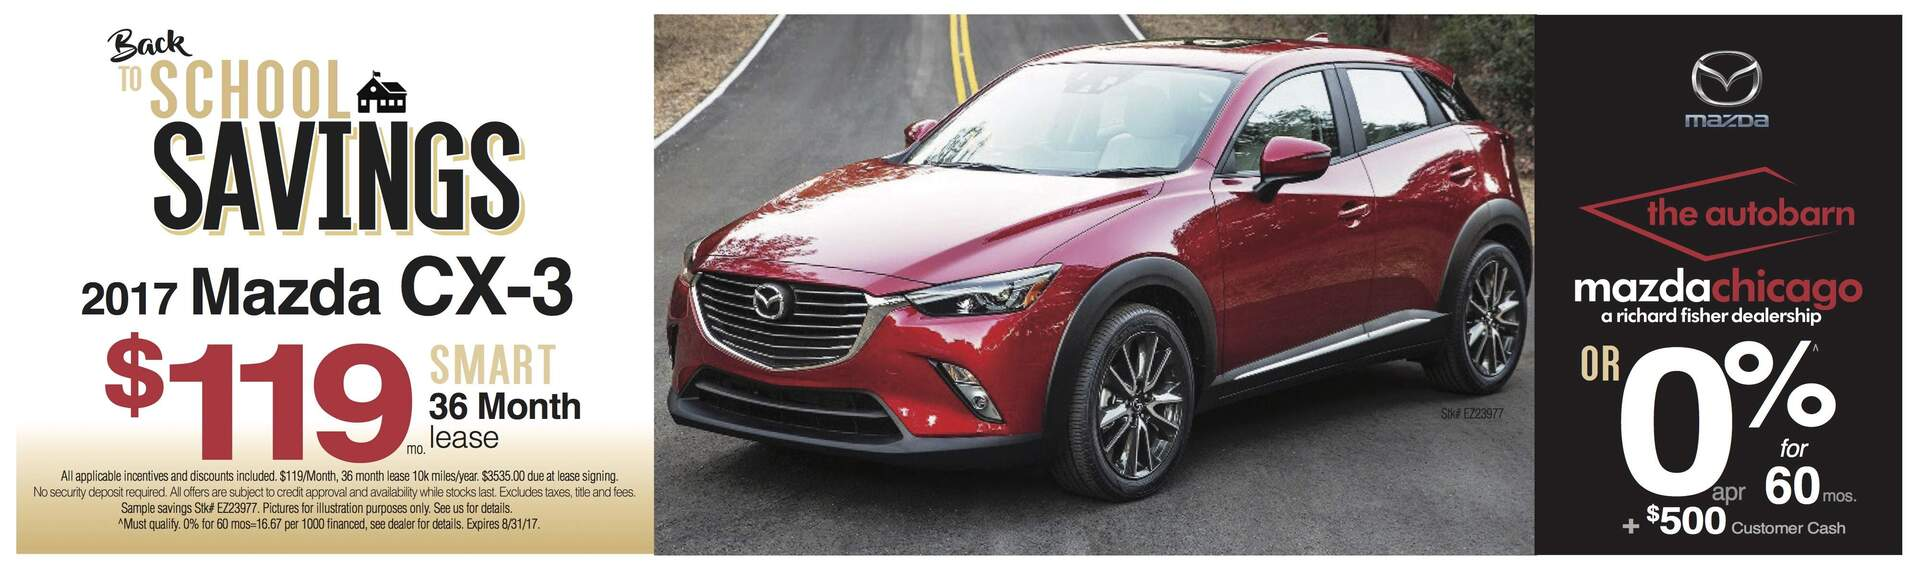 2017 Mazda CX-3 Lease August City Chicago Mazda